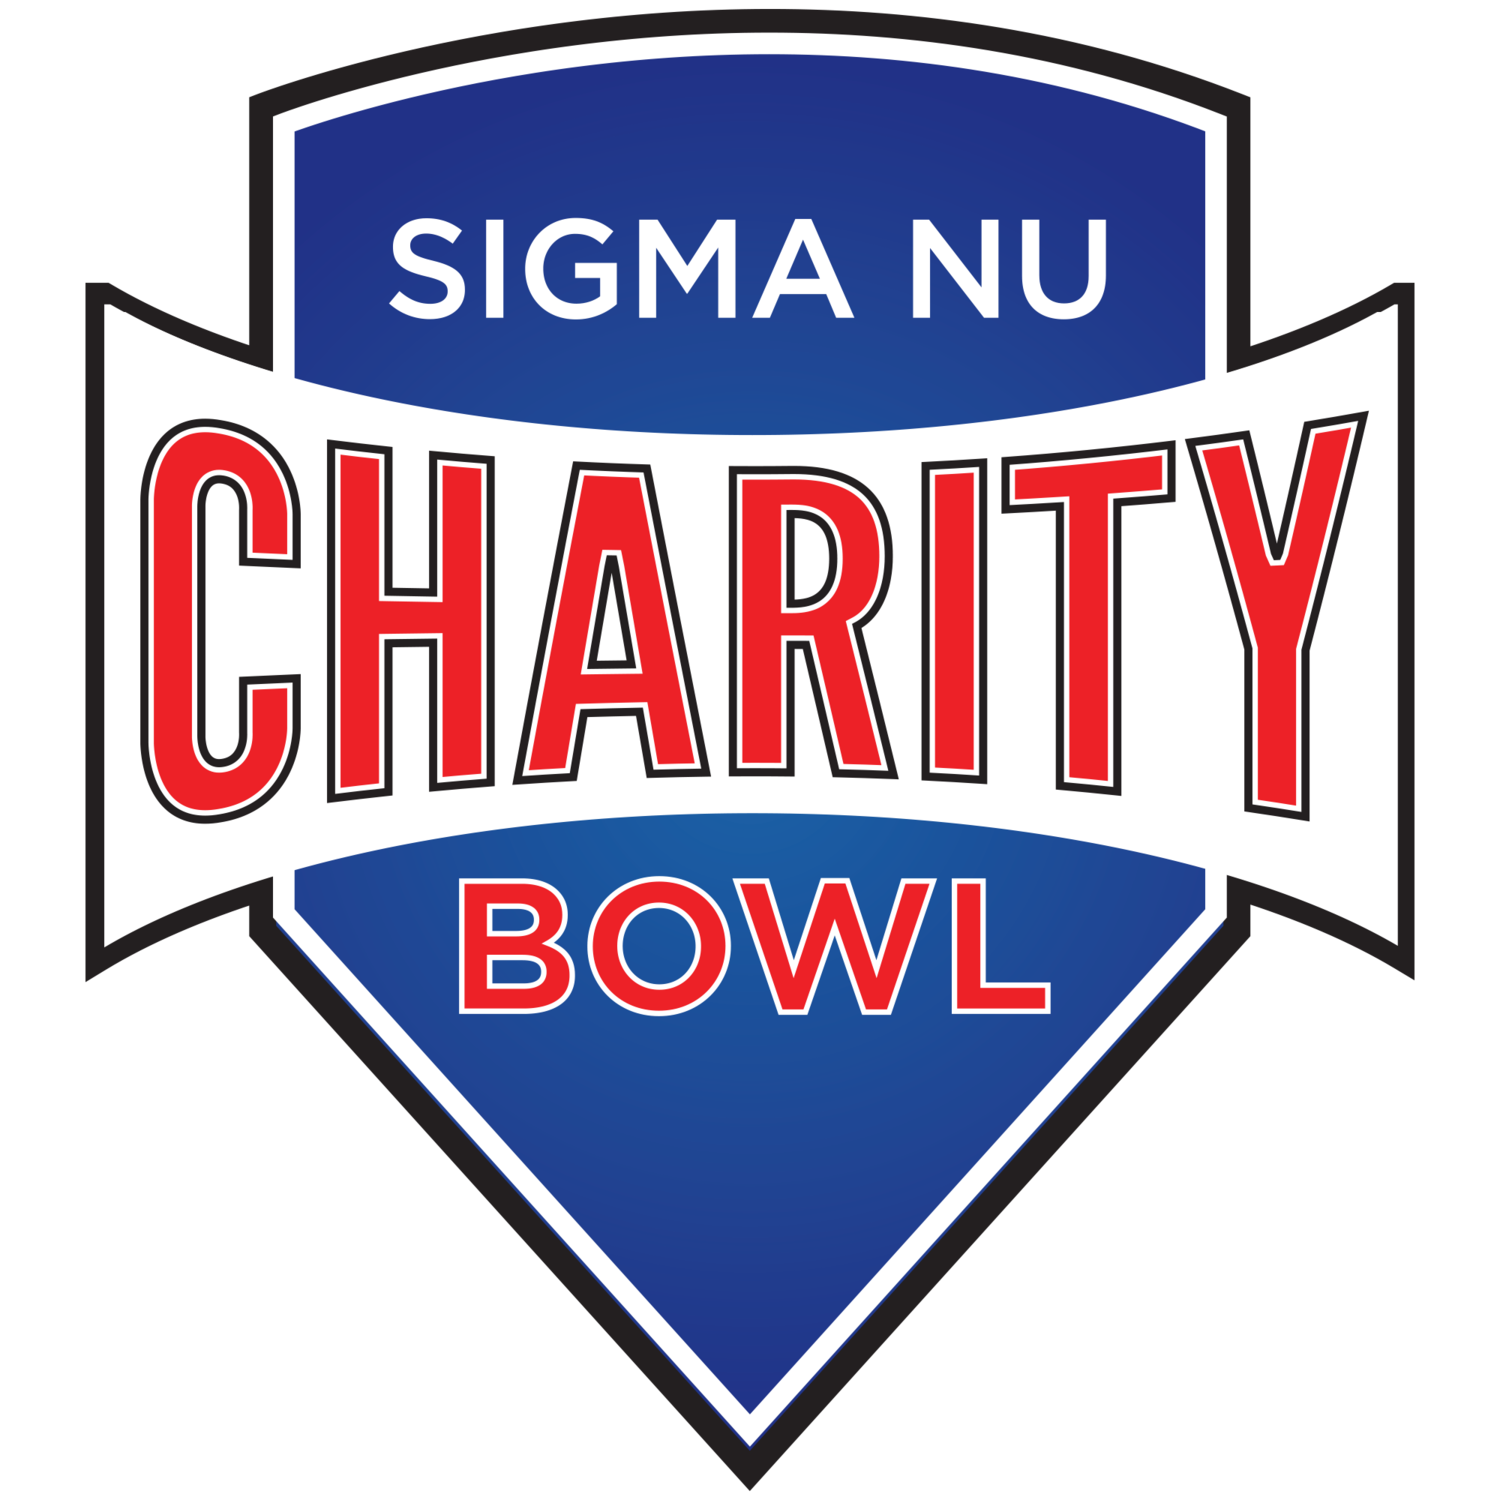 Sigma Nu Charity Bowl